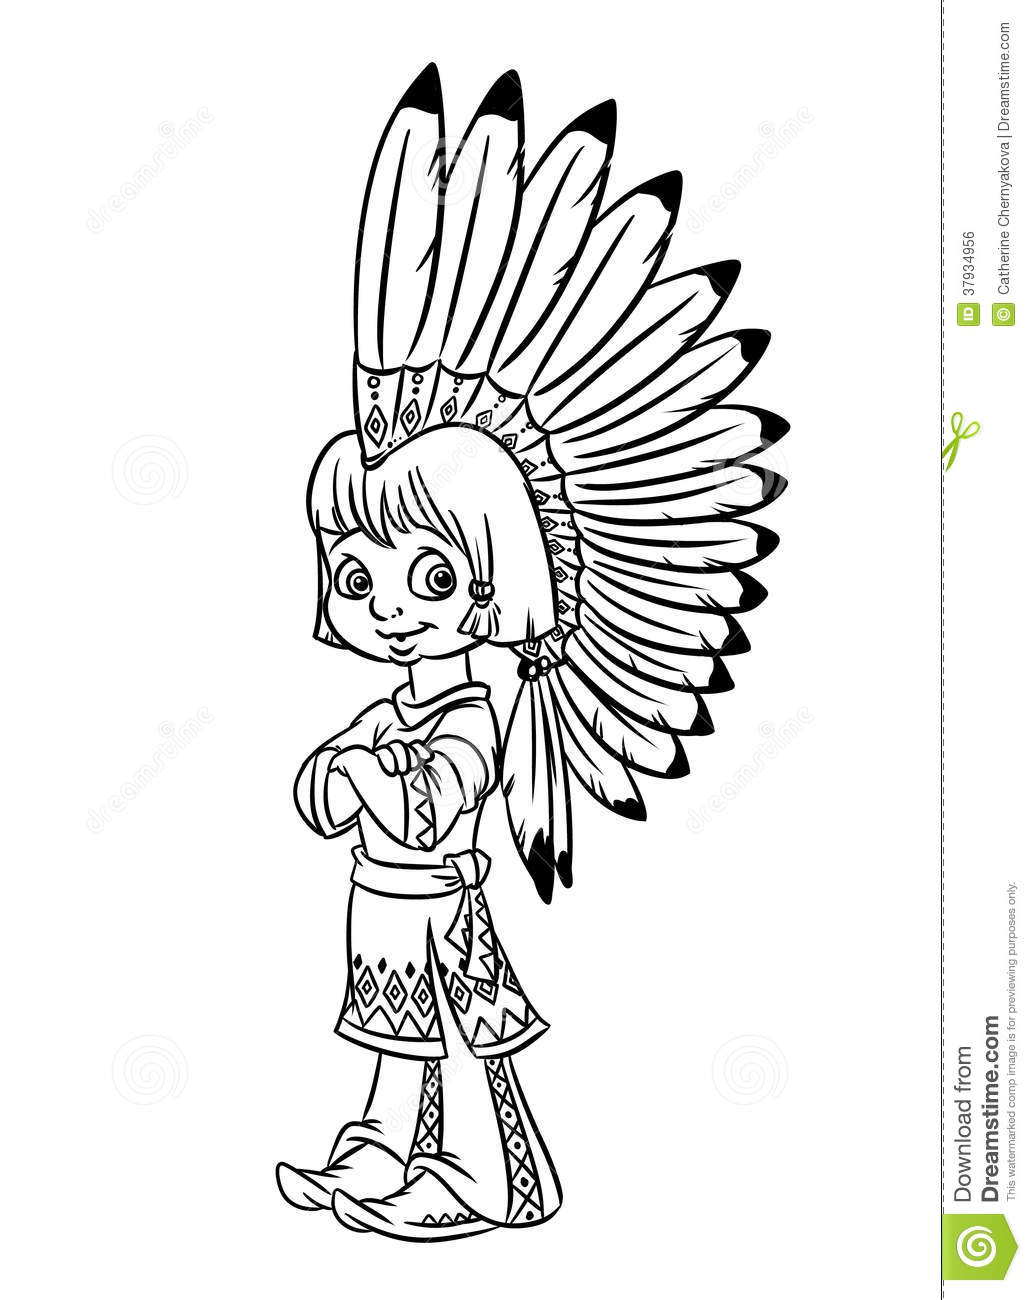 french and indian war coloring pages | Indian Chief Boy Illustration Coloring Pages Royalty Free ...